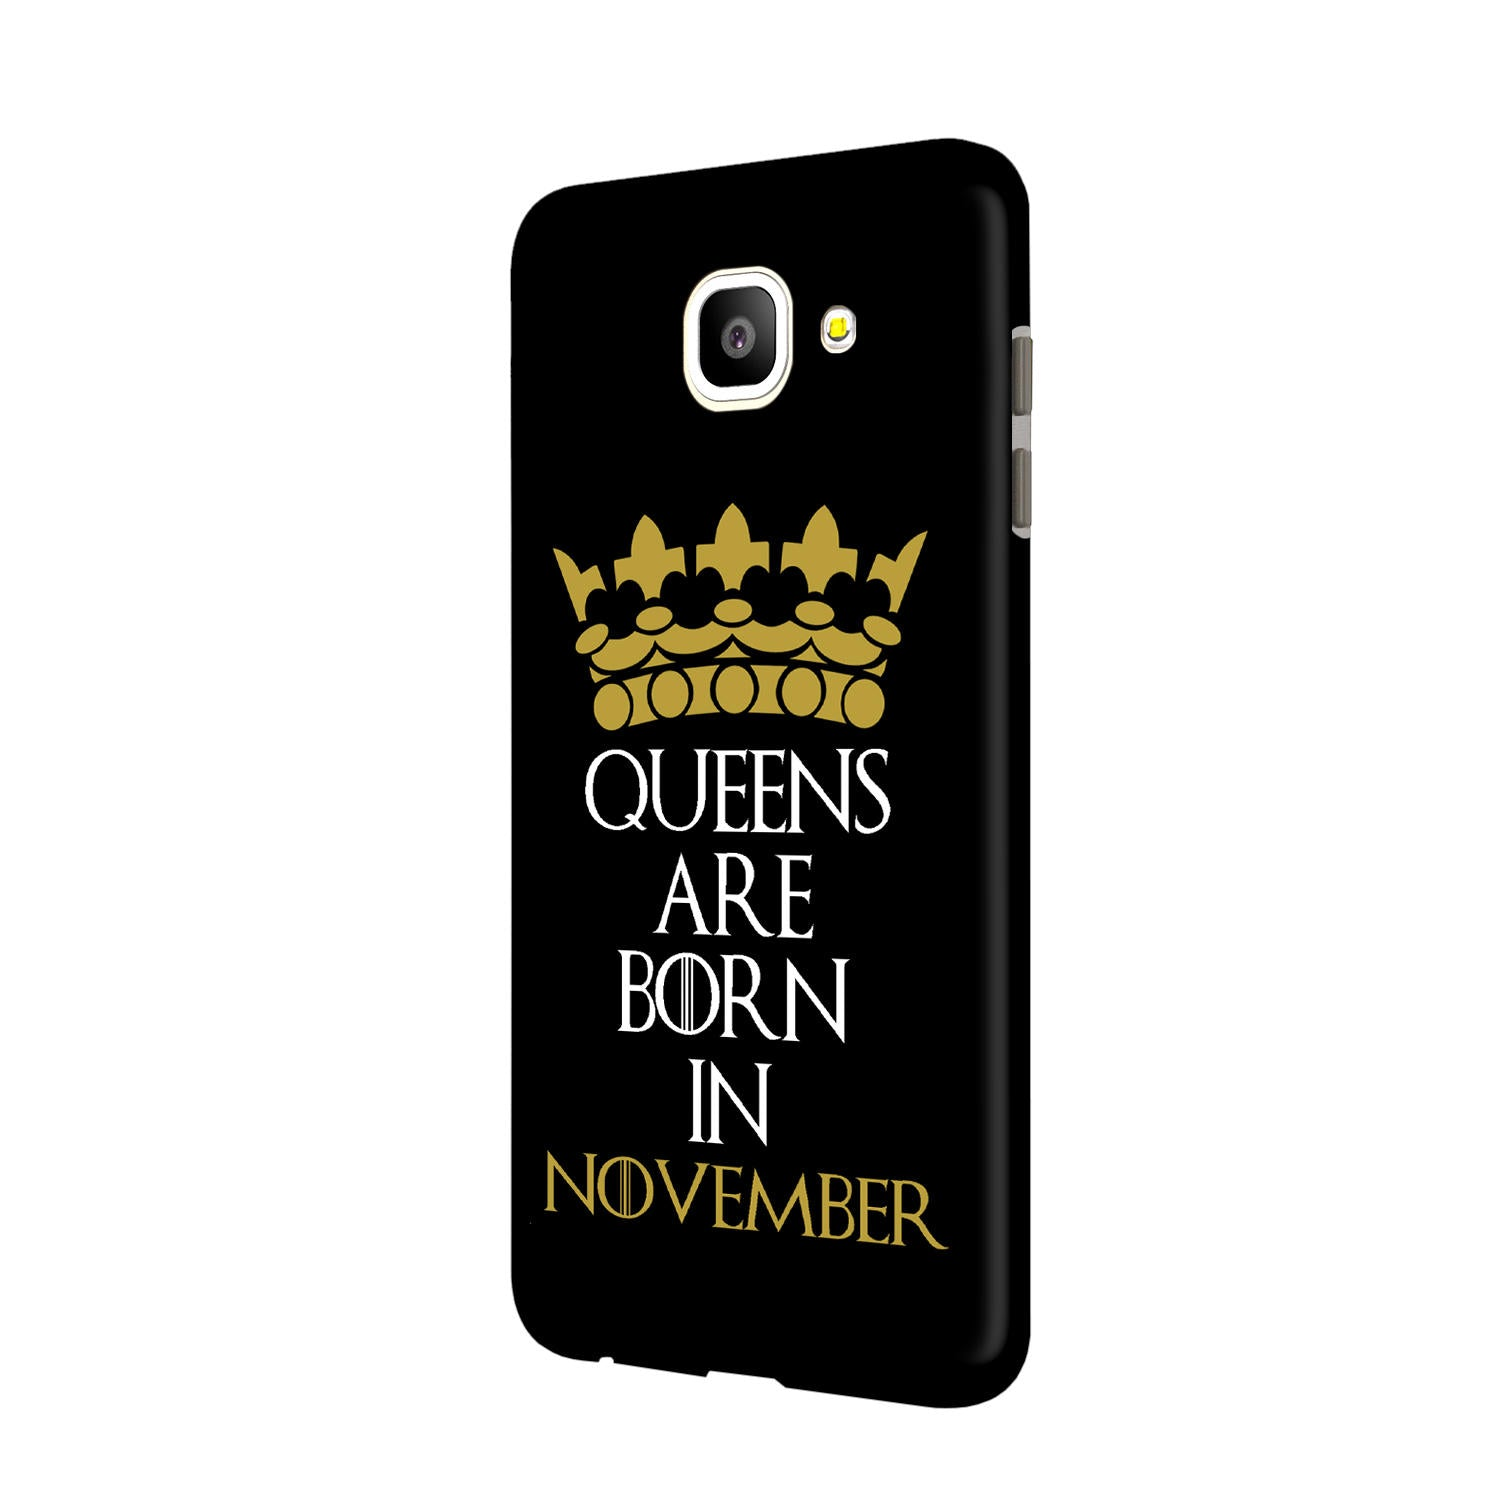 Queens November Samsung Galaxy J7 Max Mobile Cover Case